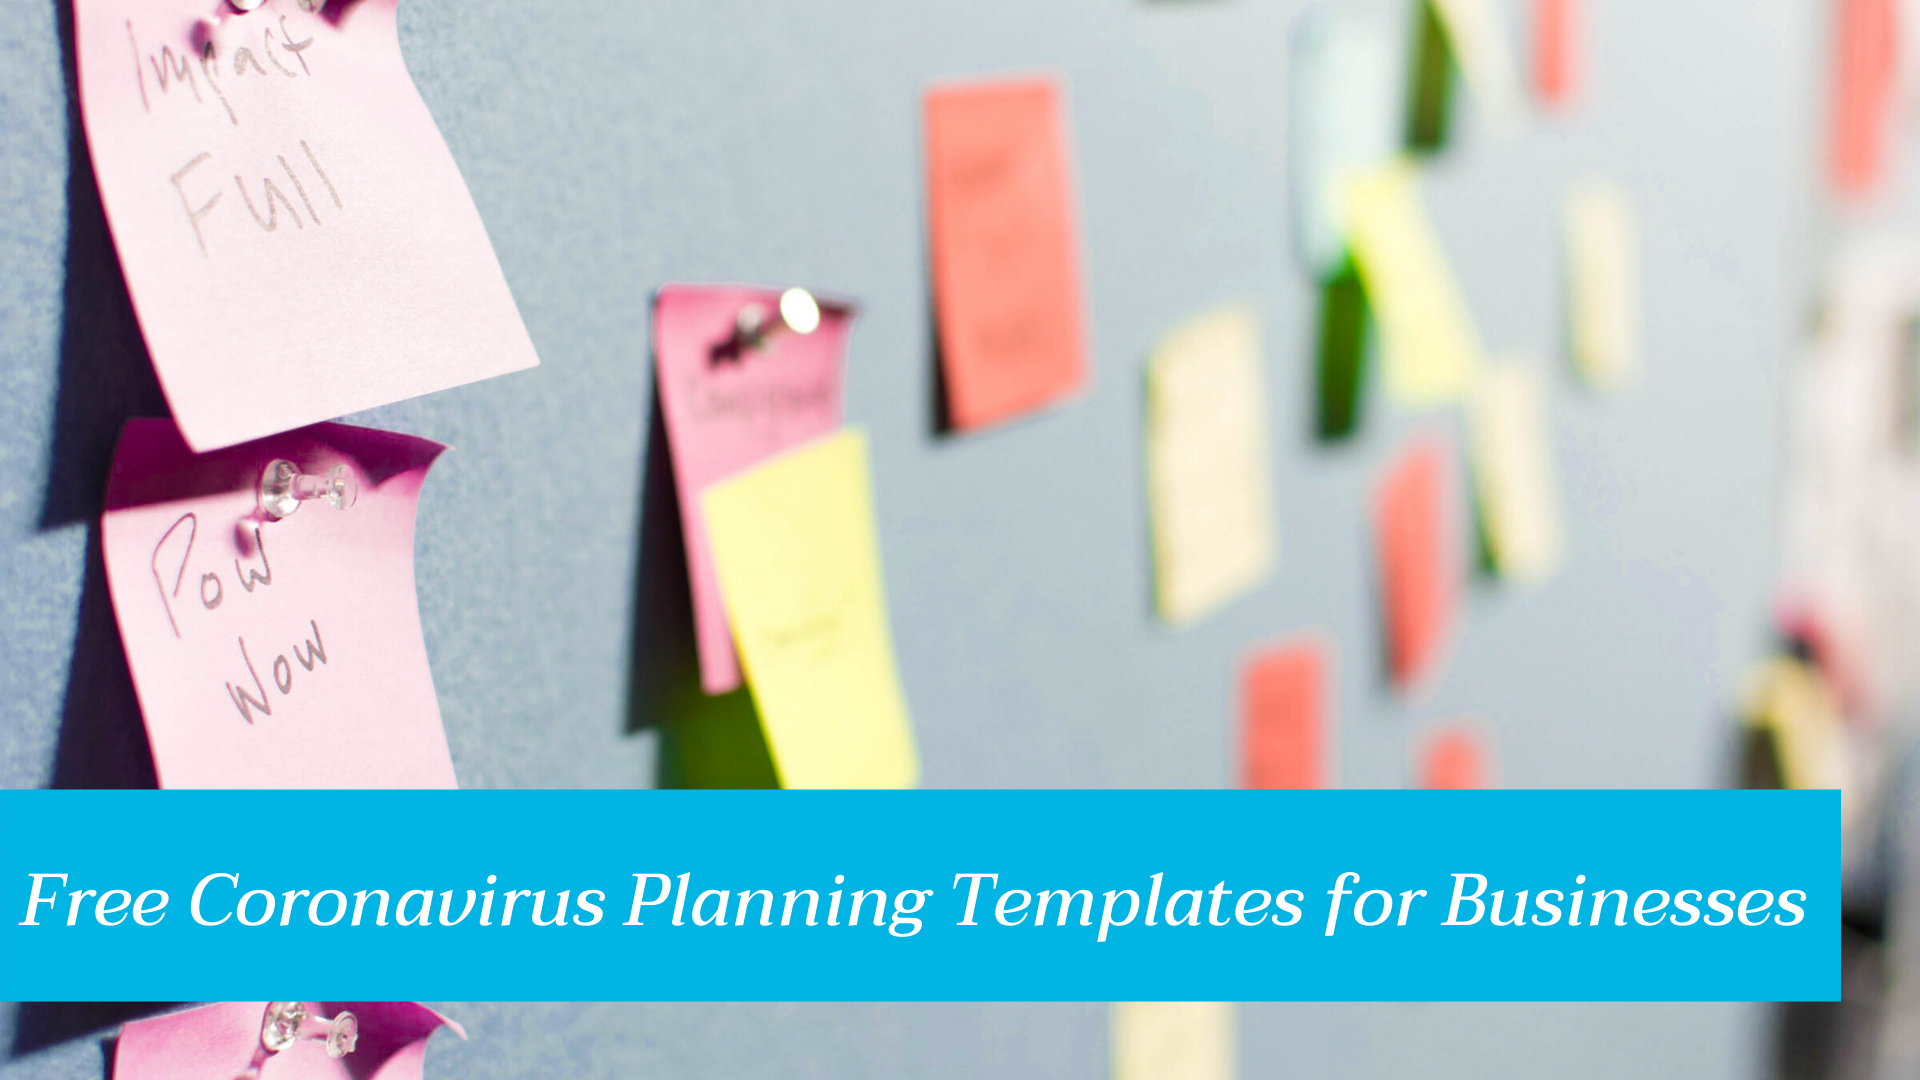 Coronavirus Business Planning Templates